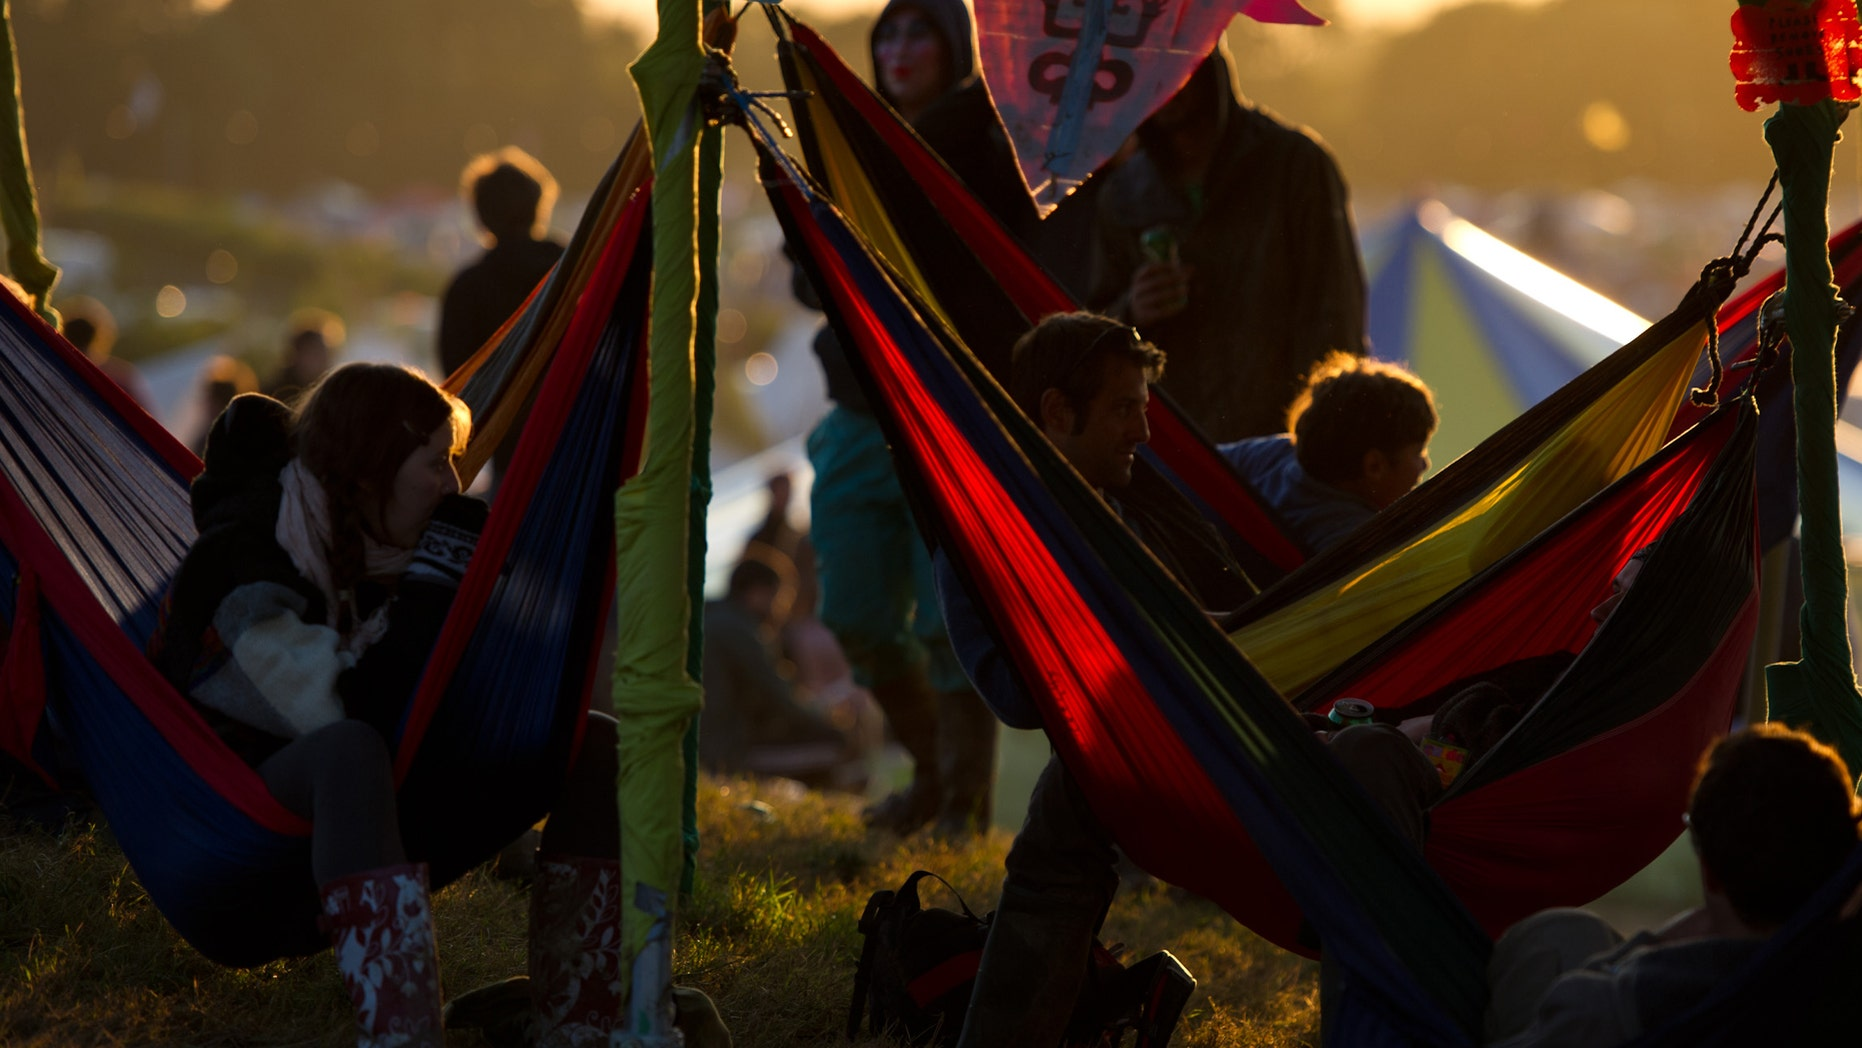 GLASTONBURY, ENGLAND - JUNE 23:  Festival goers relax in hammocks during the Glastonbury Festival at Worthy Farm, Pilton on June 23, 2011 in Glastonbury, England. The festival, which started in 1970 when several hundred hippies paid 1 GBP to watch Marc Bolan, has grown into Europe's largest music festival attracting more than 175,000 people over five days  (Photo by Ian Gavan/Getty Images)